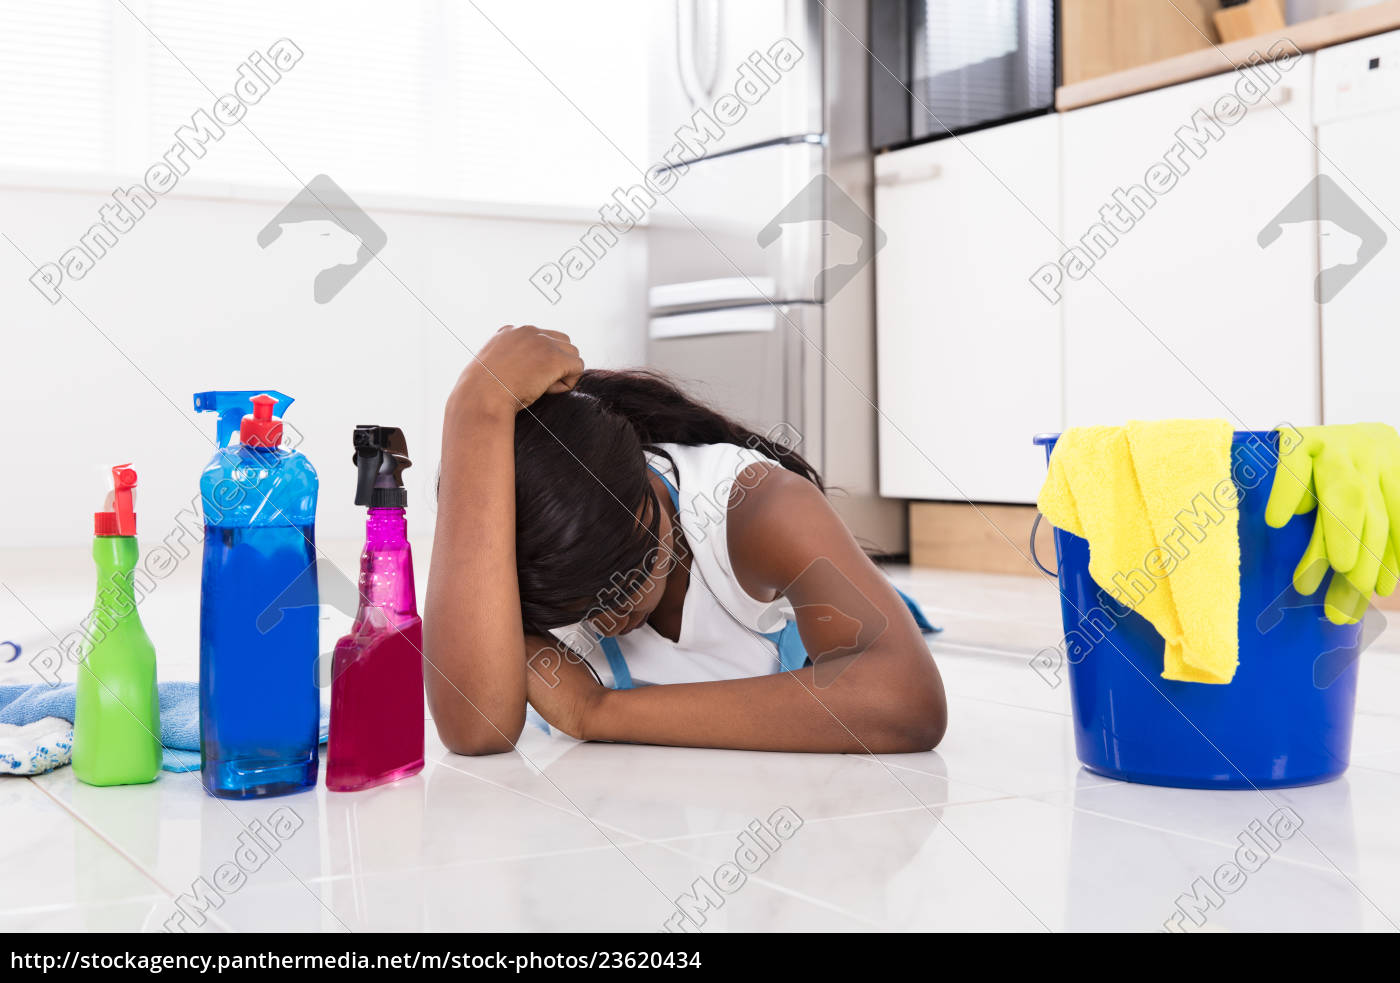 woman, lying, on, kitchen, floor, with - 23620434